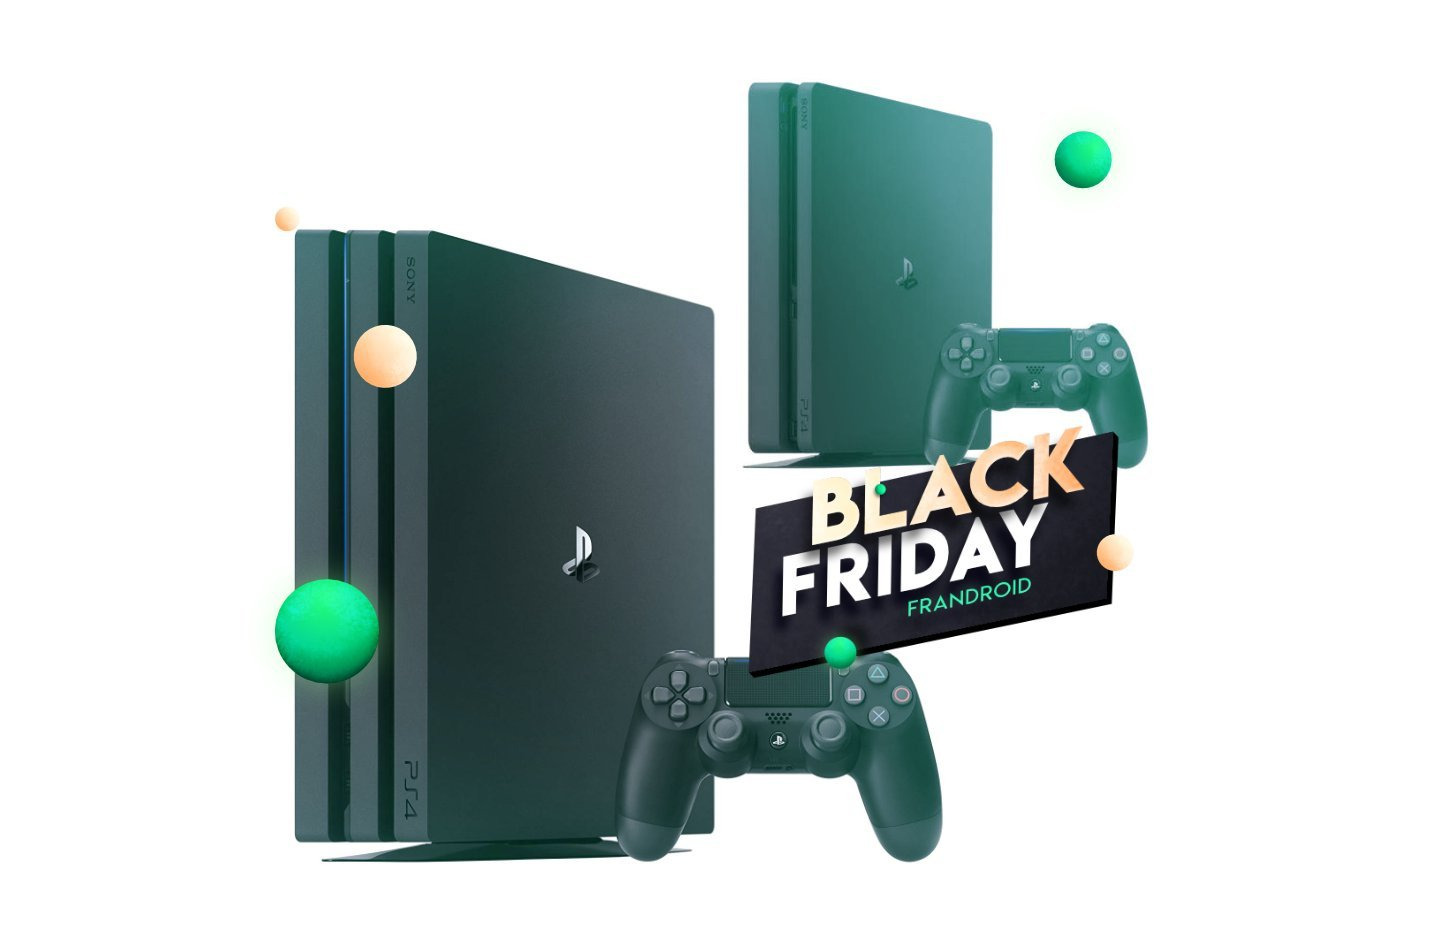 Dites merci au Black Friday, la PlayStation 4 est disponible à partir de 189 €